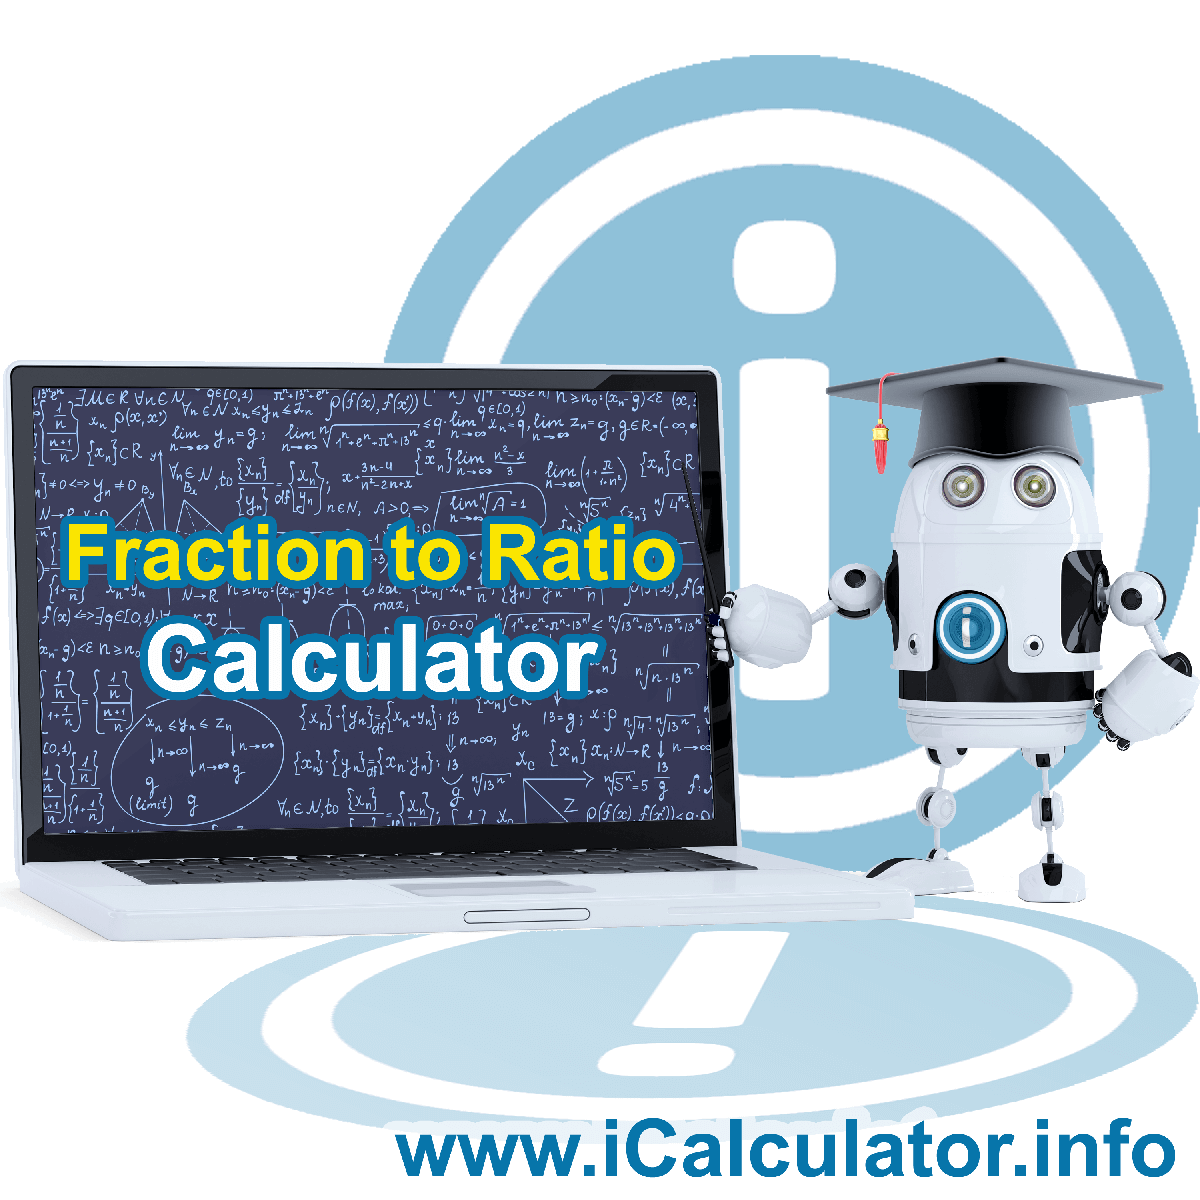 Fraction To Ratio. This image shows the properties and fraction to ratio formula for the Fraction To Ratio